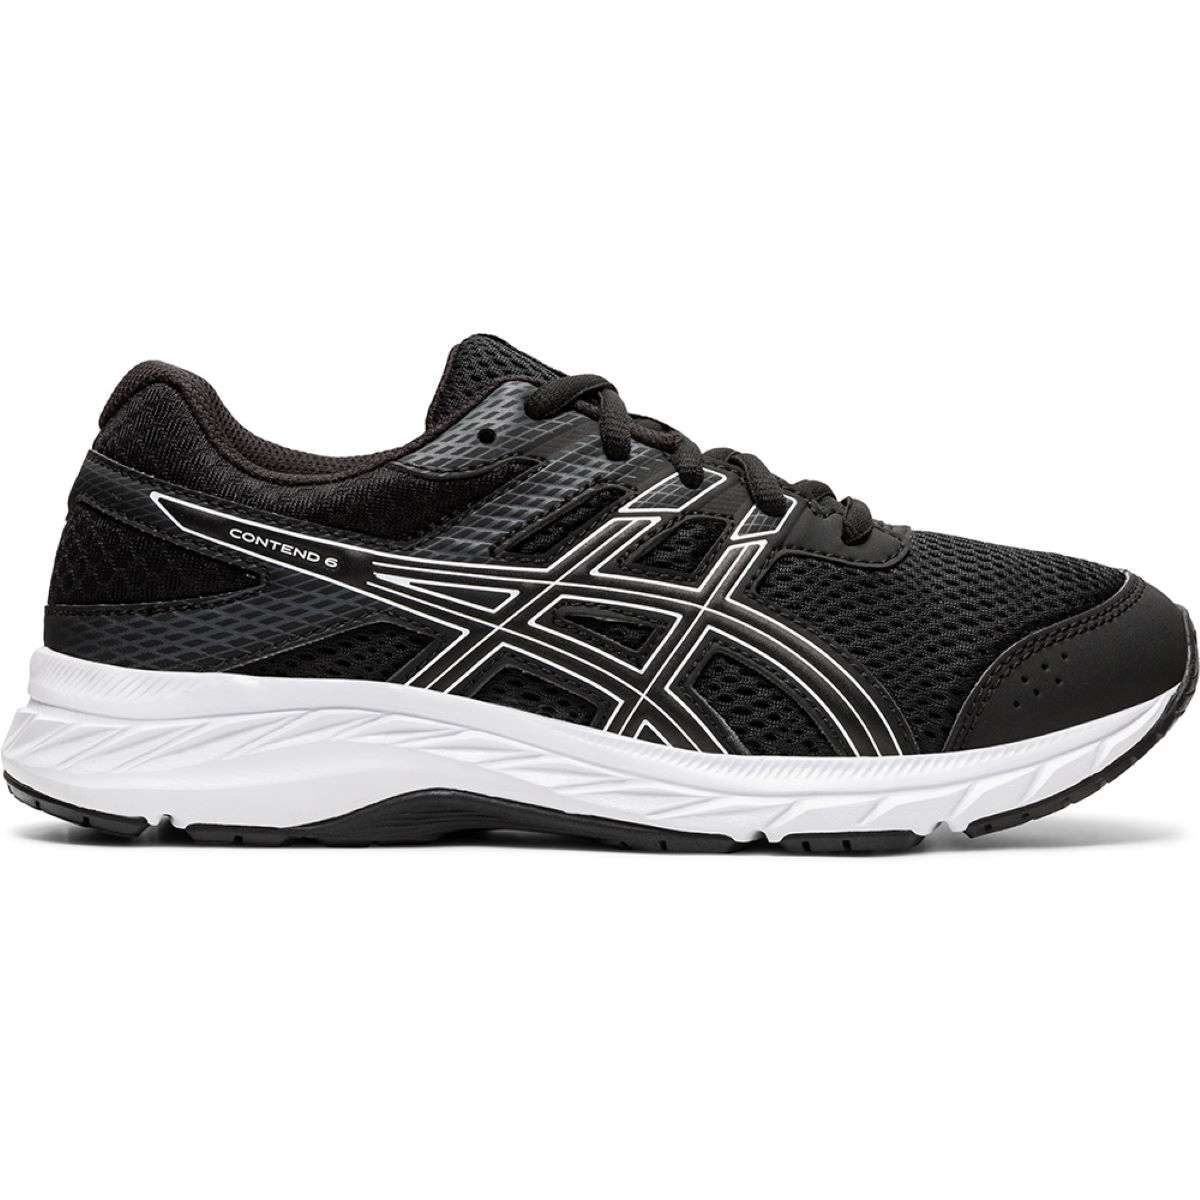 Asics Contend 6 GS Running Shoes - UK 2.5 BLACK/WHITE | Running Shoes